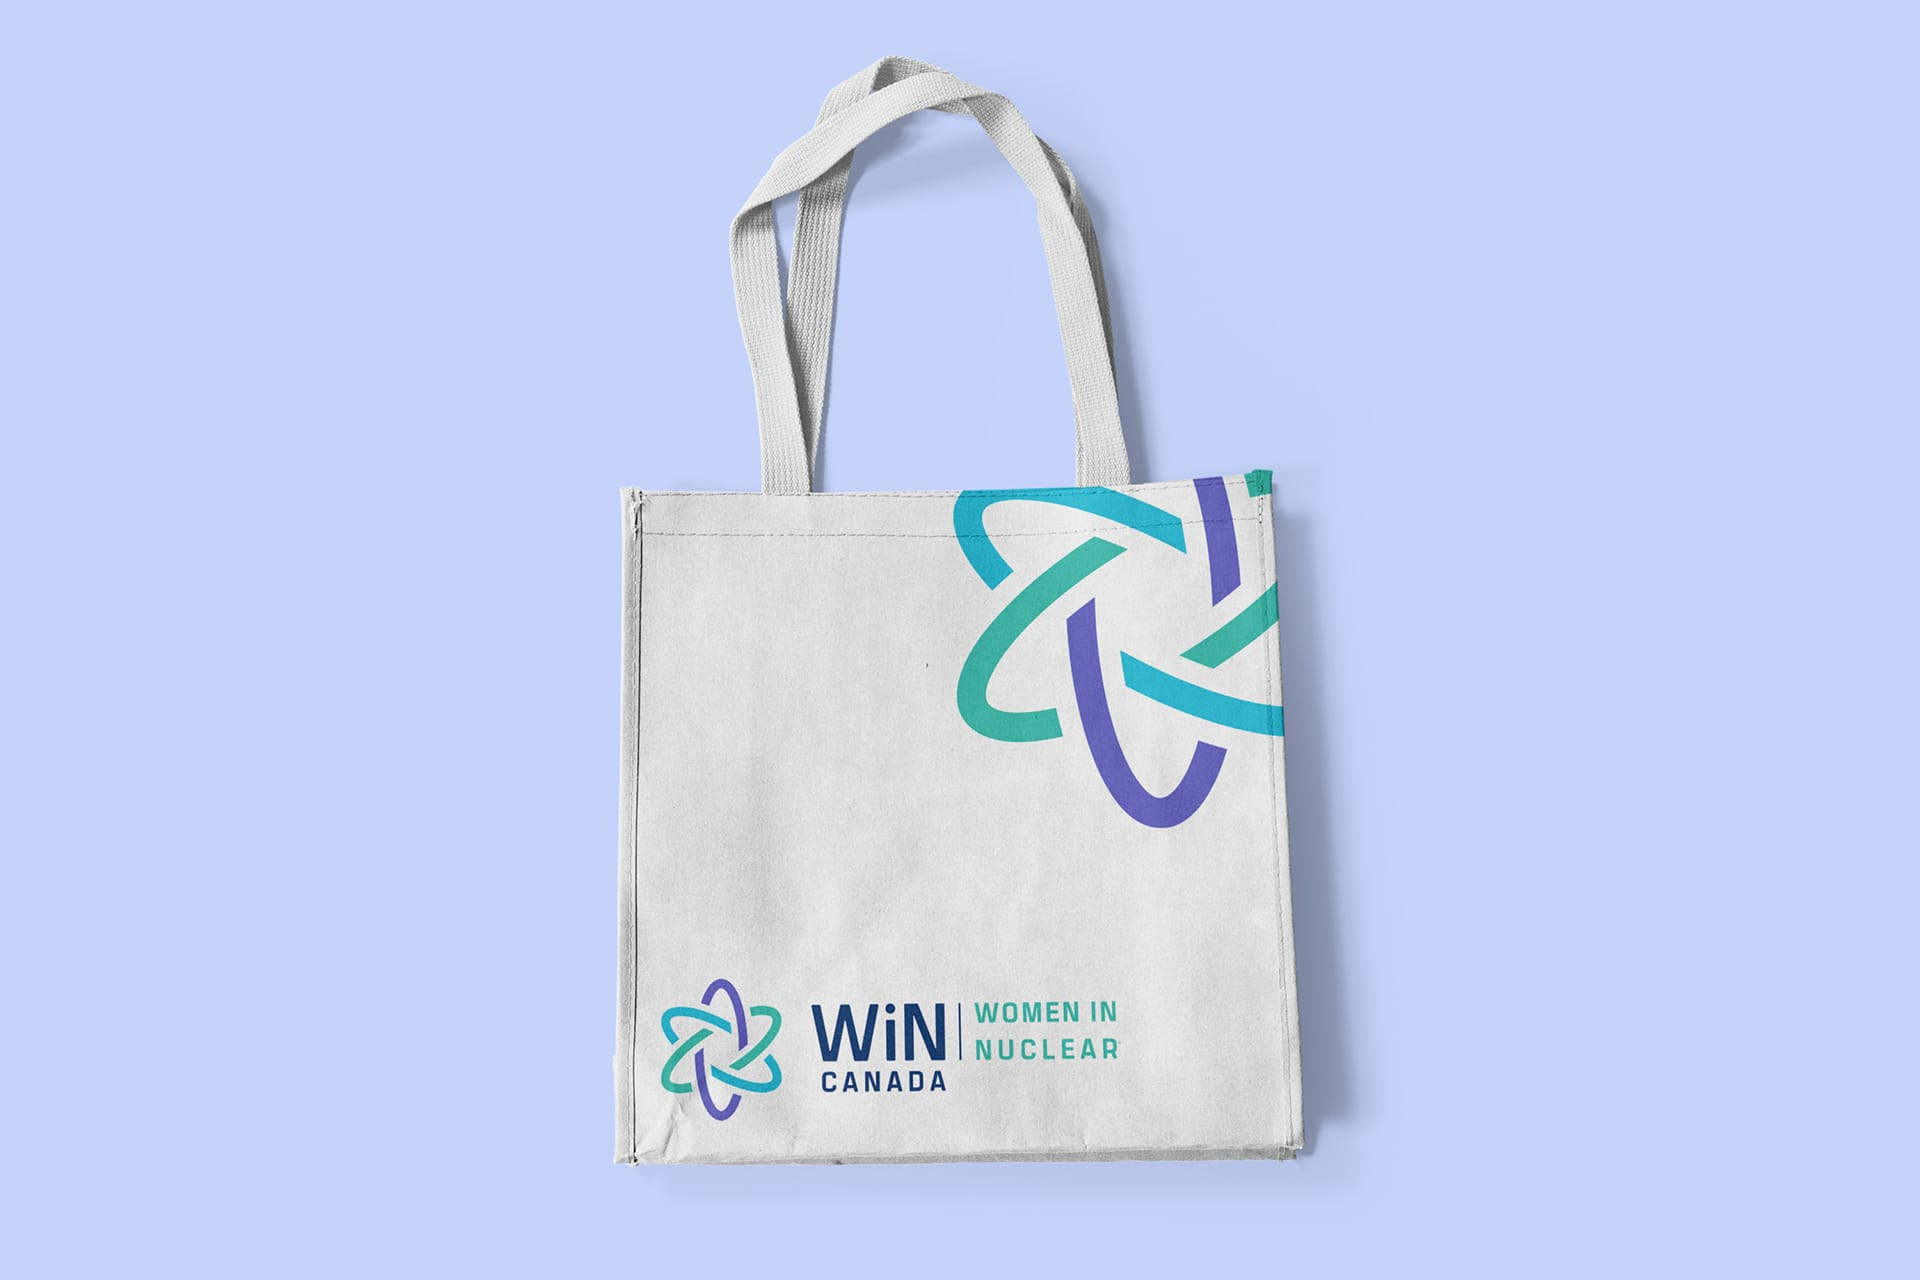 WiN Canada - Tote Bag Design